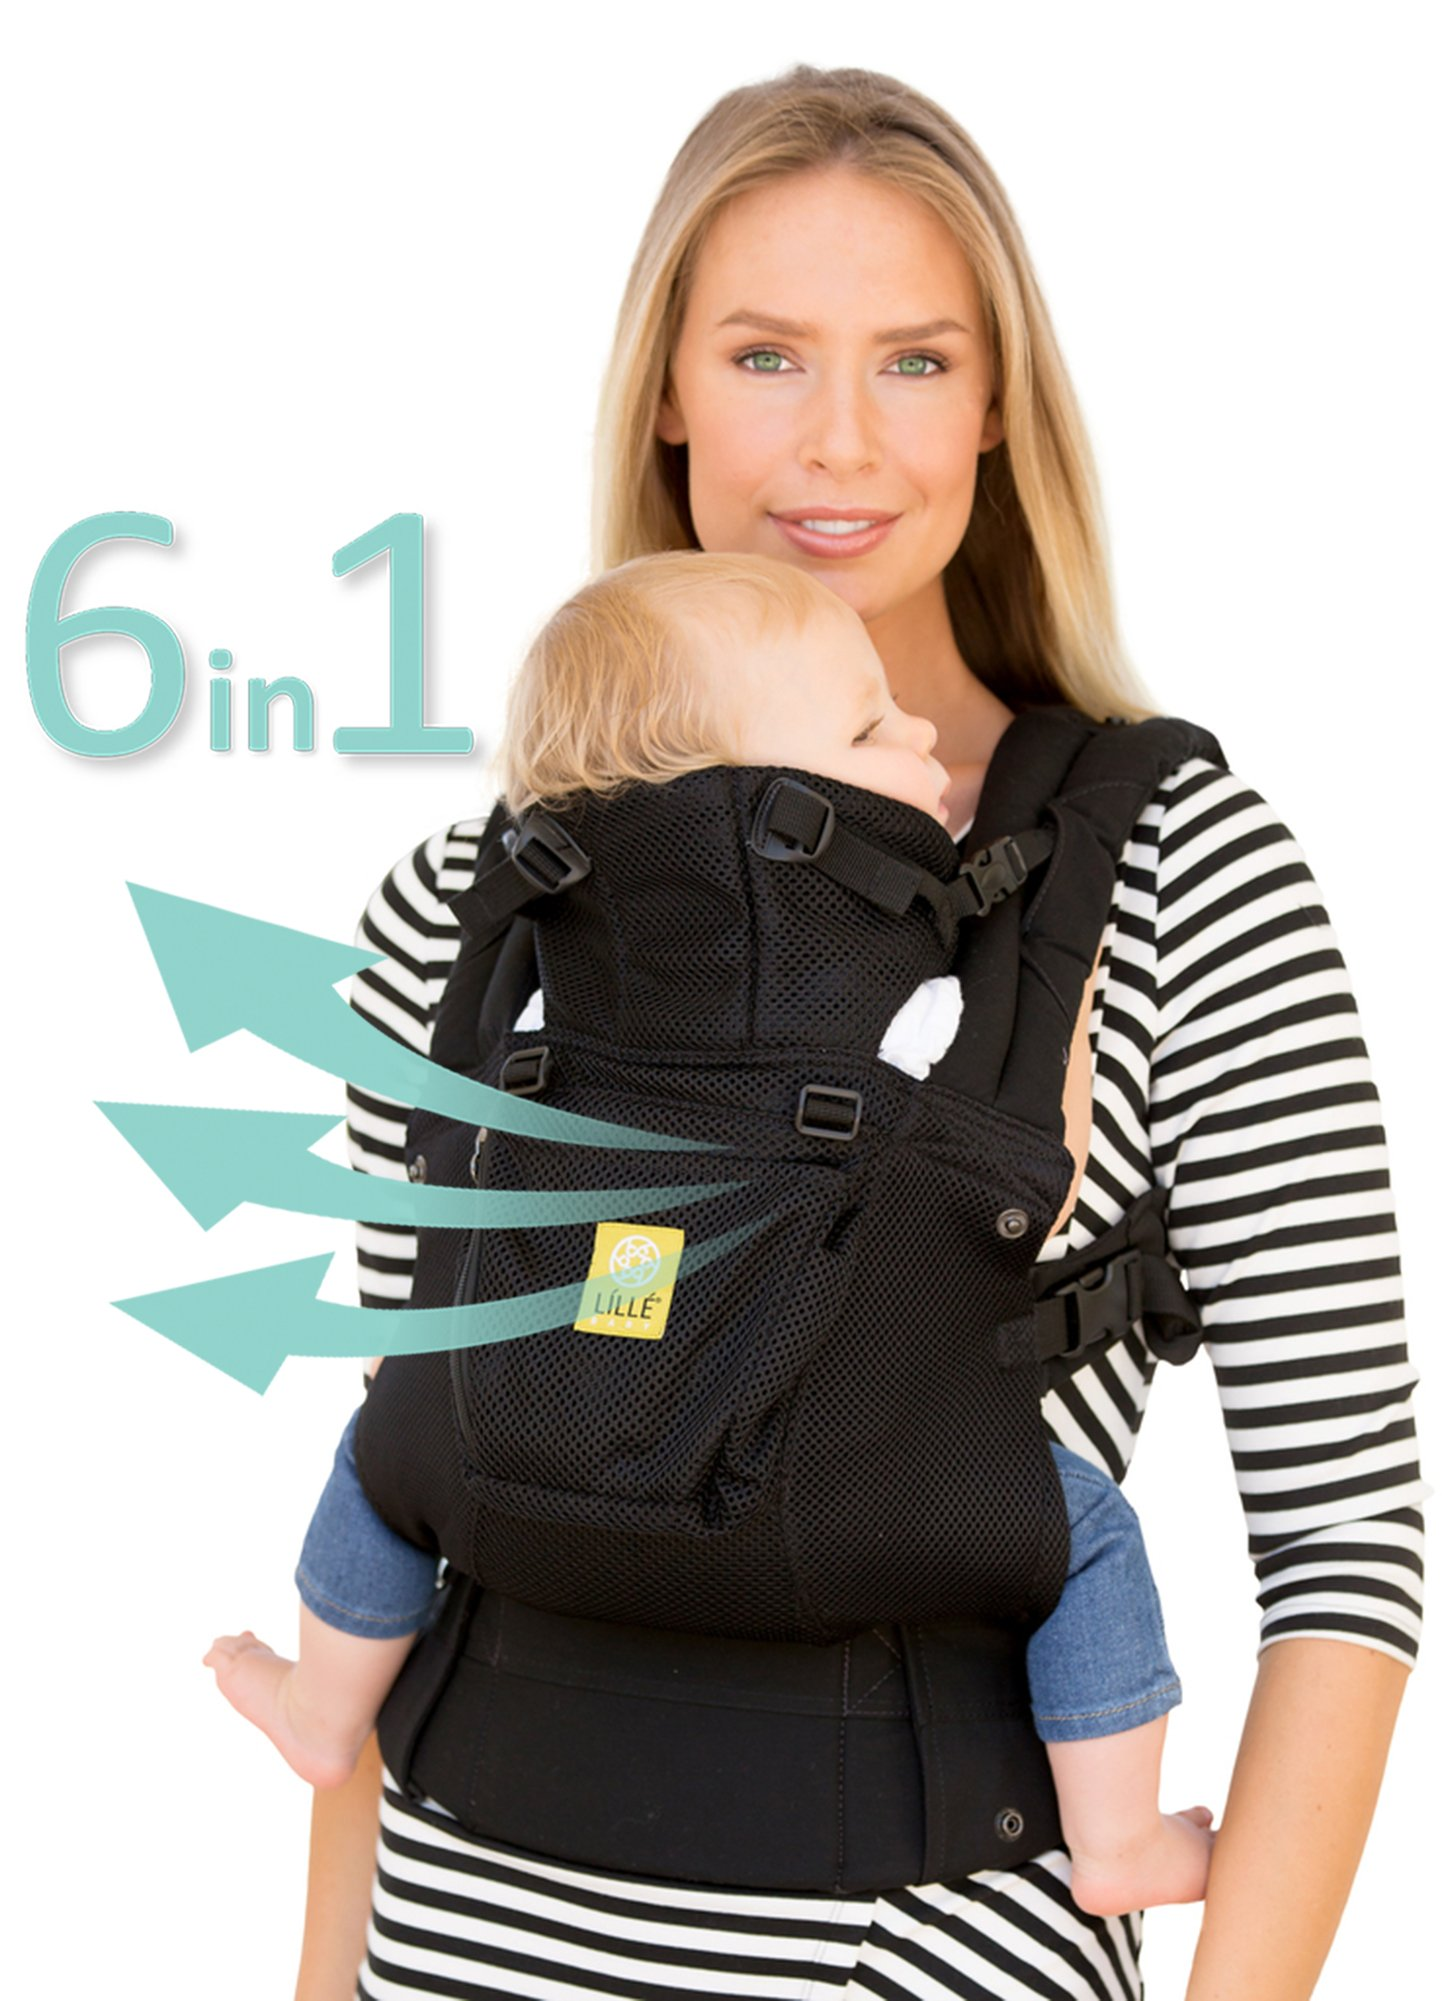 LILLEbaby SIX-Position, 360° Ergonomic Baby & Child Carrier – The COMPLETE Airflow (Black)